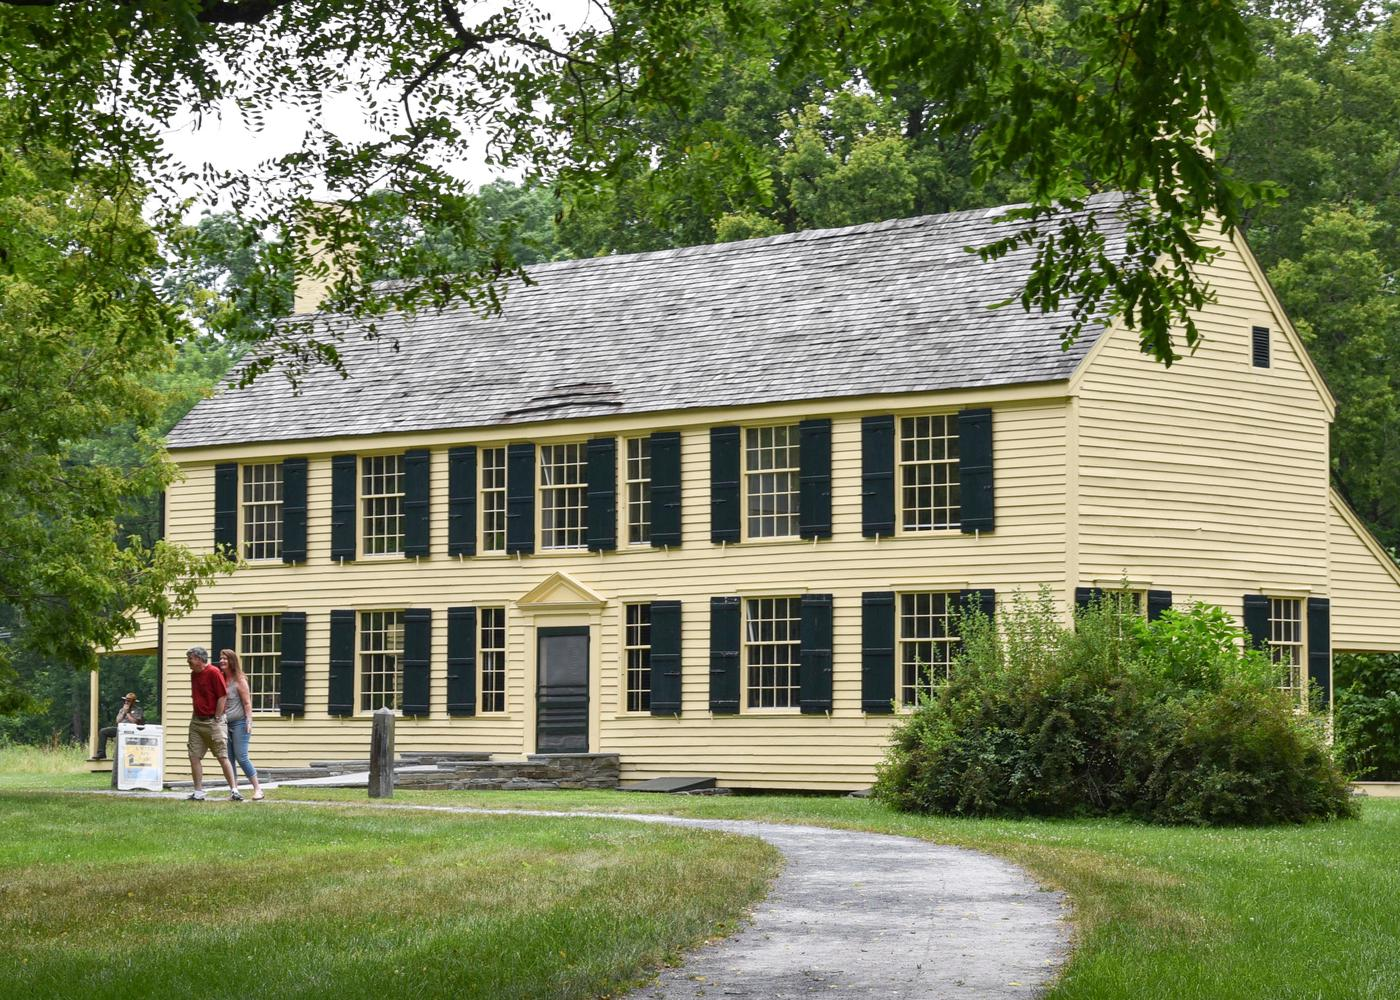 Philip Schuyler HouseSchuyler House was the country estate of American General Philip Schuyler.